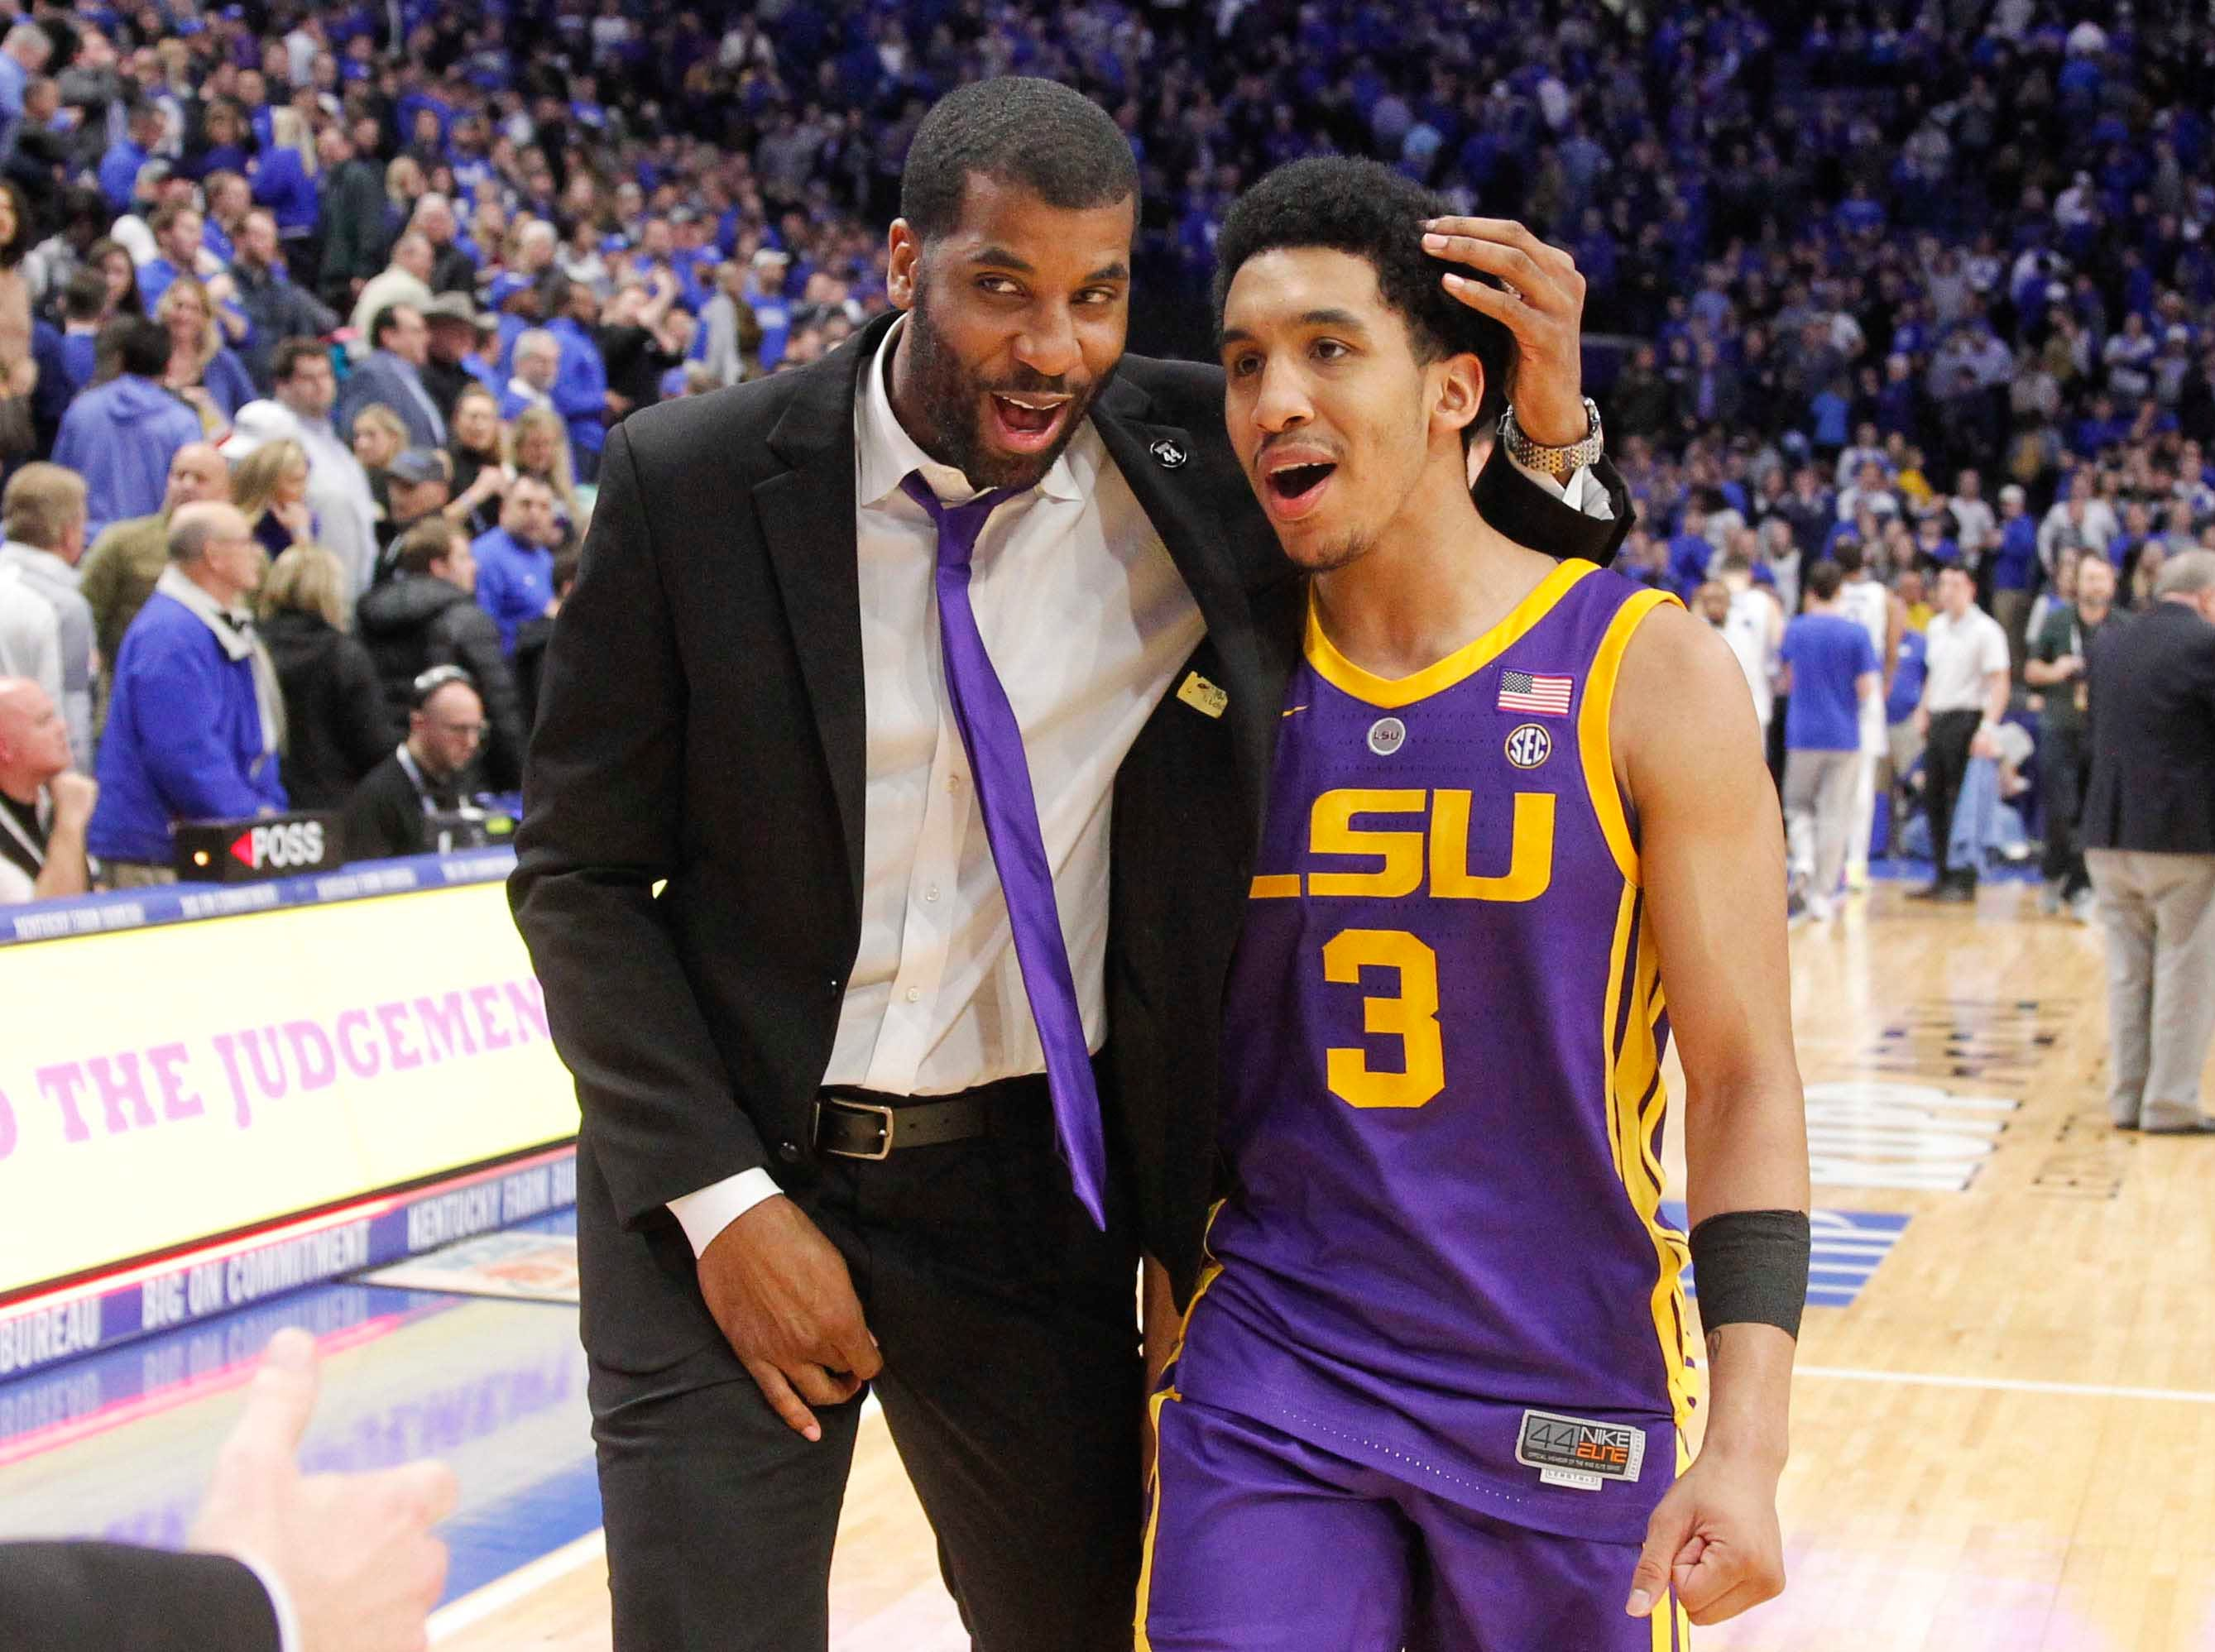 Feb 12, 2019; Lexington, KY, USA; LSU Tigers guard Tremont Waters (3) celebrates after the game against the Kentucky Wildcats at Rupp Arena. Mandatory Credit: Mark Zerof-USA TODAY Sports